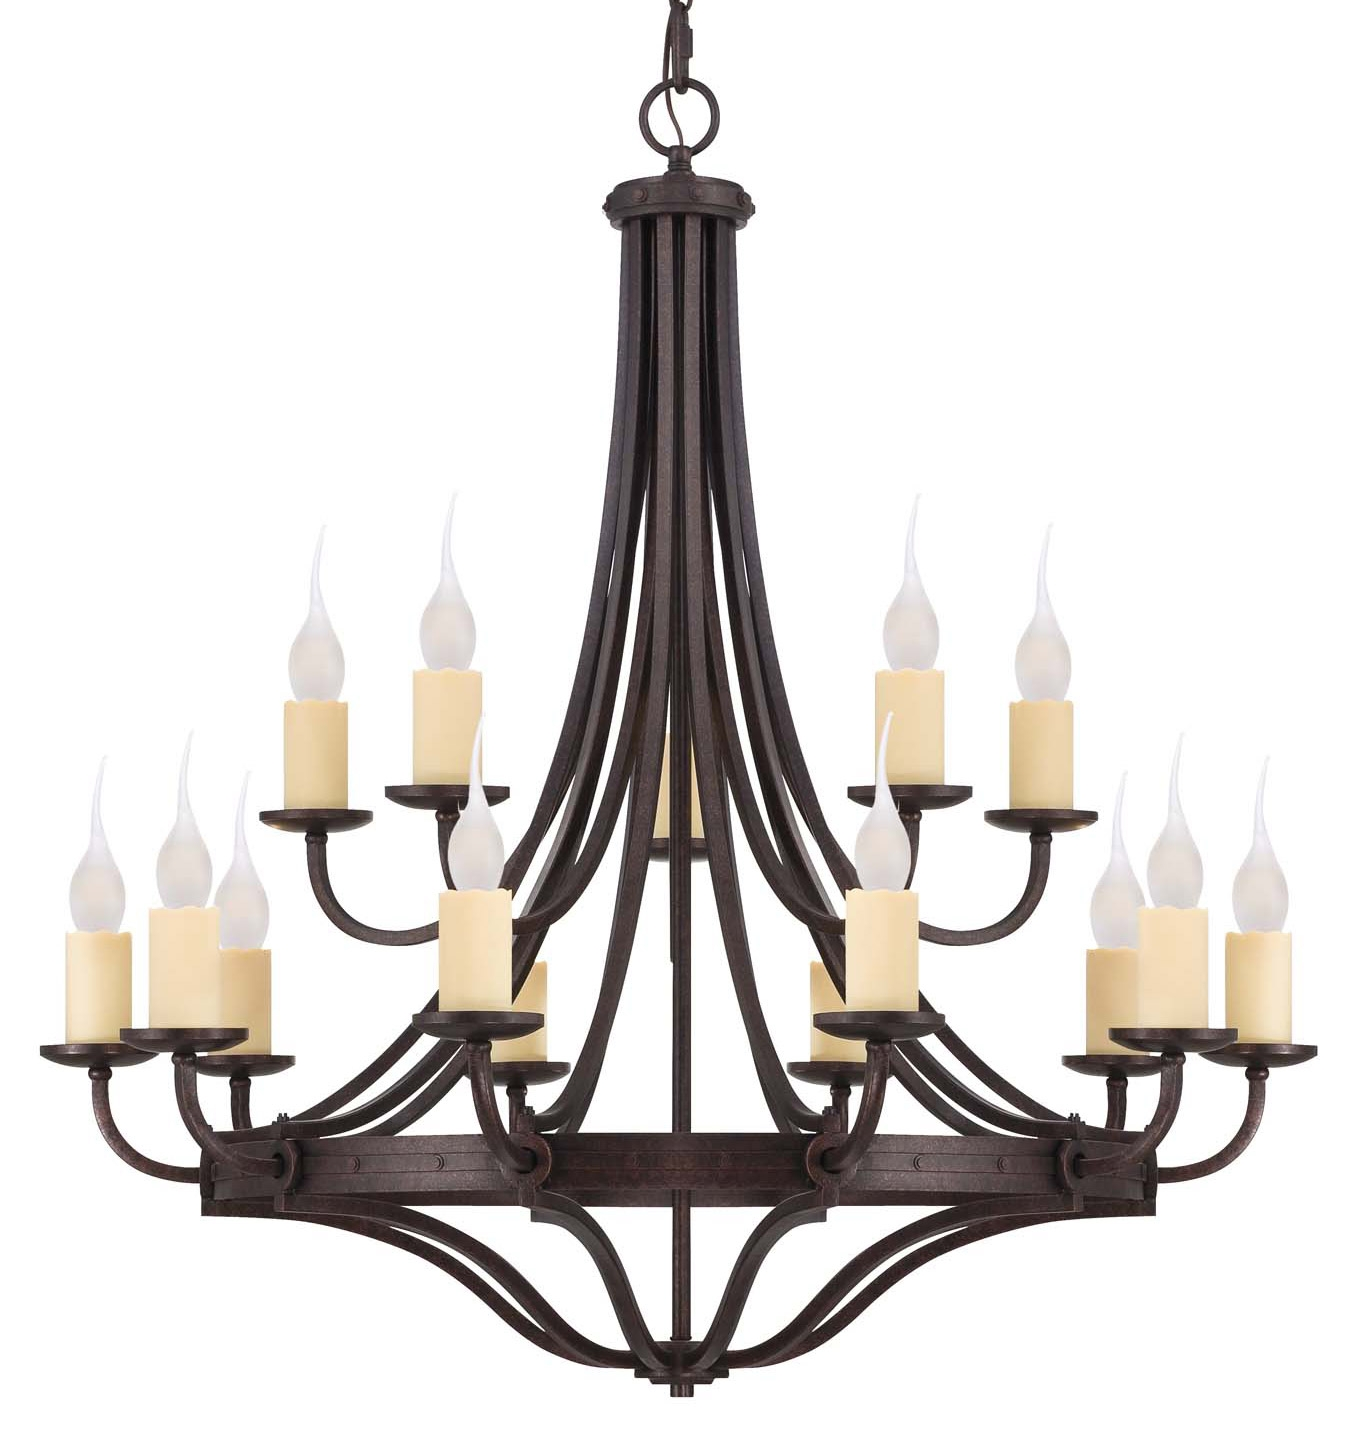 House 1 2014 15 05 Elba 15 Light Large Chandelier Pertaining To Large Chandeliers (#6 of 12)